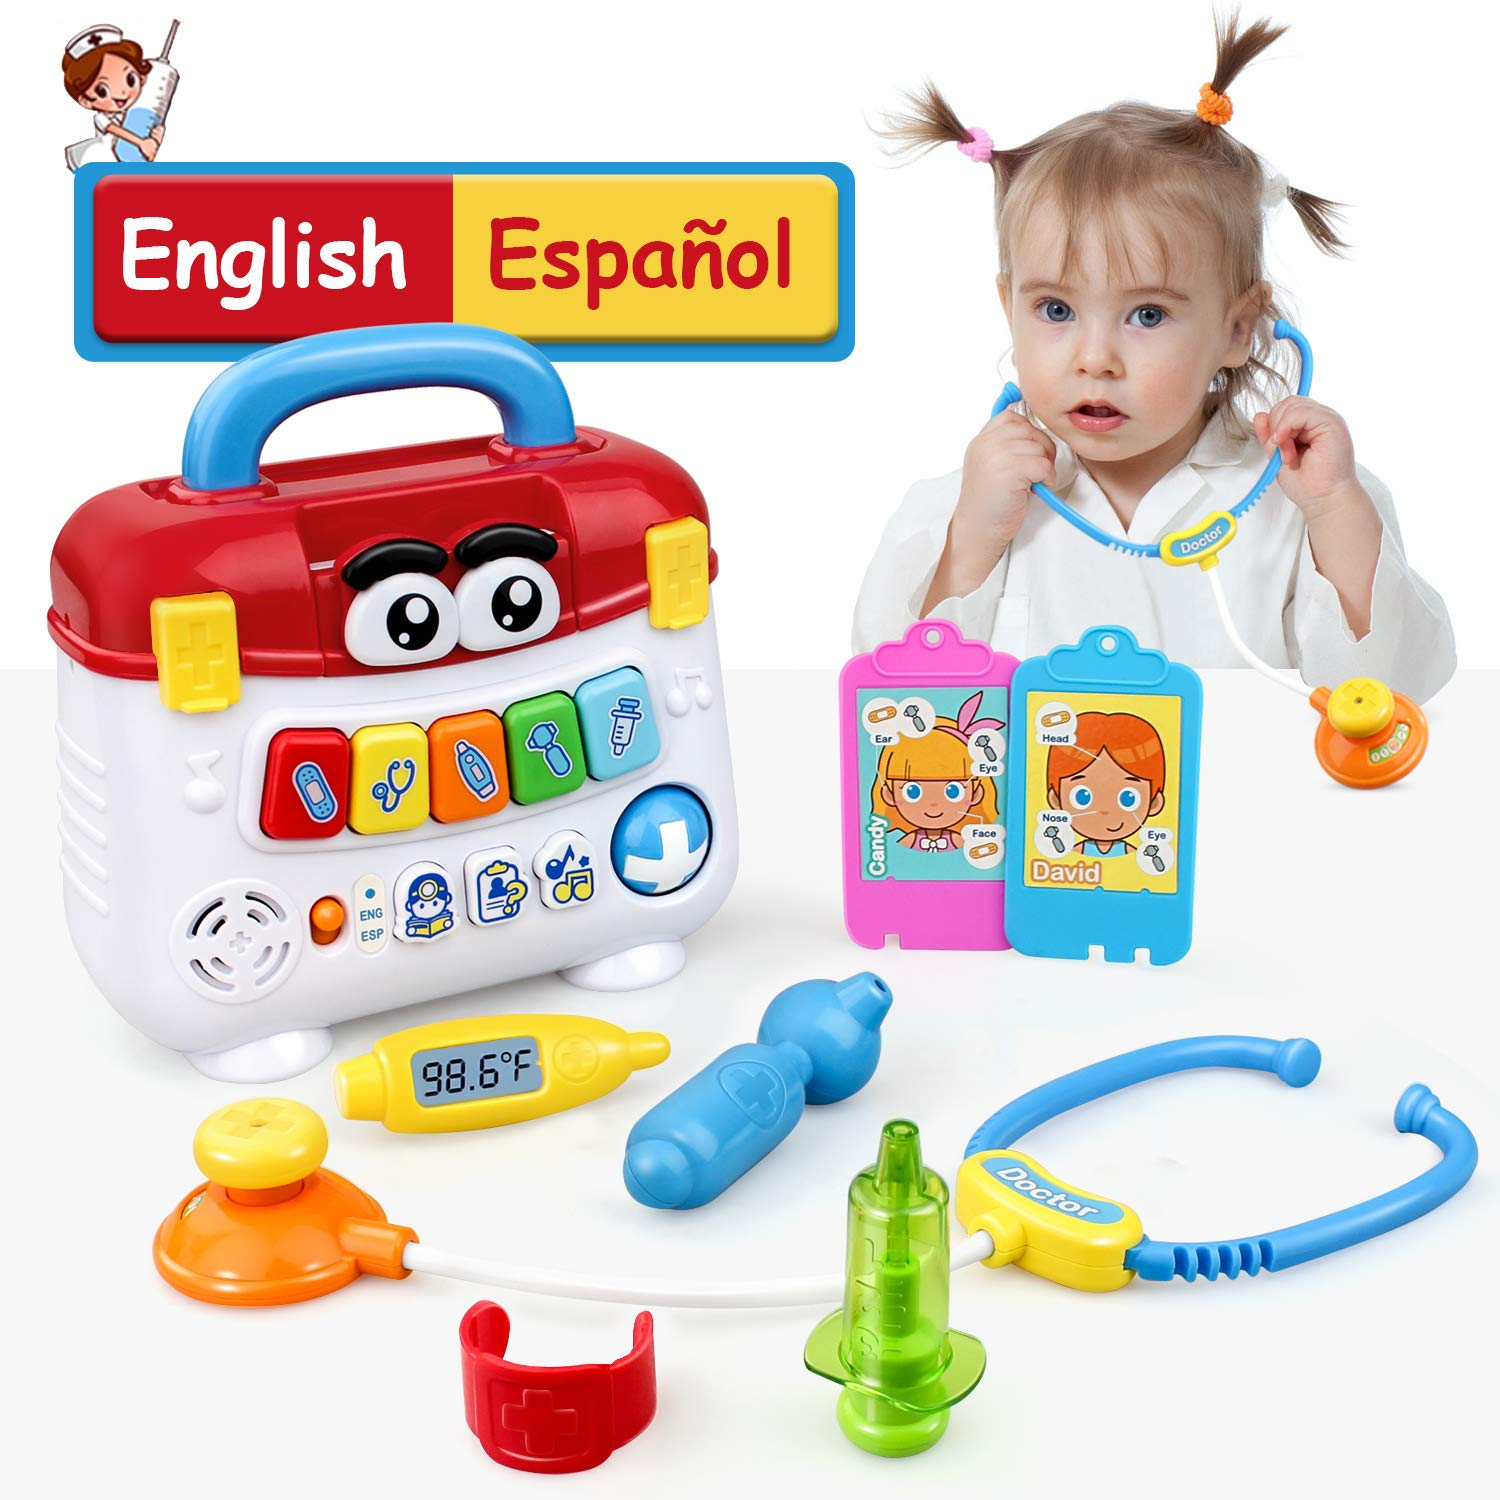 GrowthPic Kids Toy Play Medical Kit Pretend Play Doctor Set for Toddlers - Medical Box with Music, Lights and Preschool Learning Program in English and Spanish for Babies, Boys and Girls 2-6 Years by GrowthPic